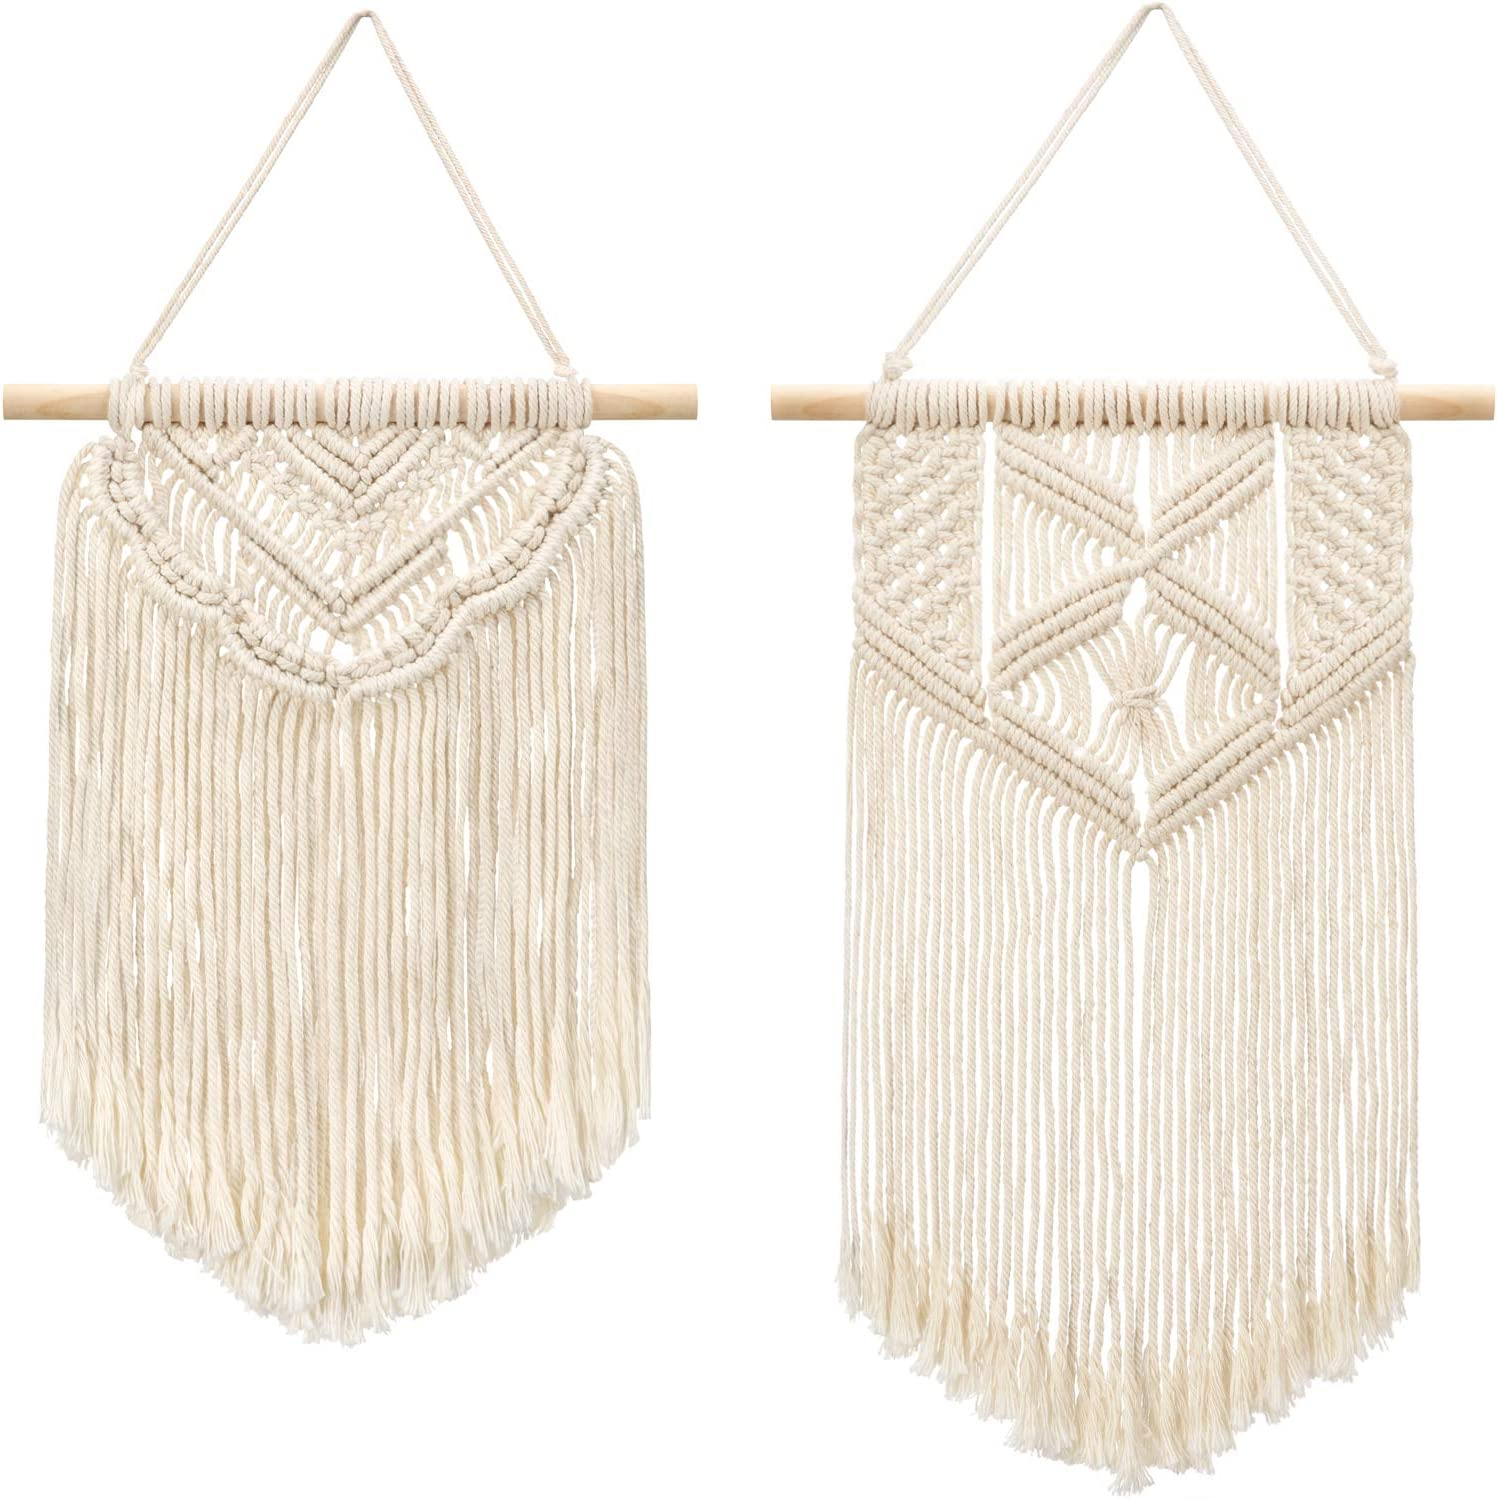 How to decorate your boho style living room. fringe wall decor.